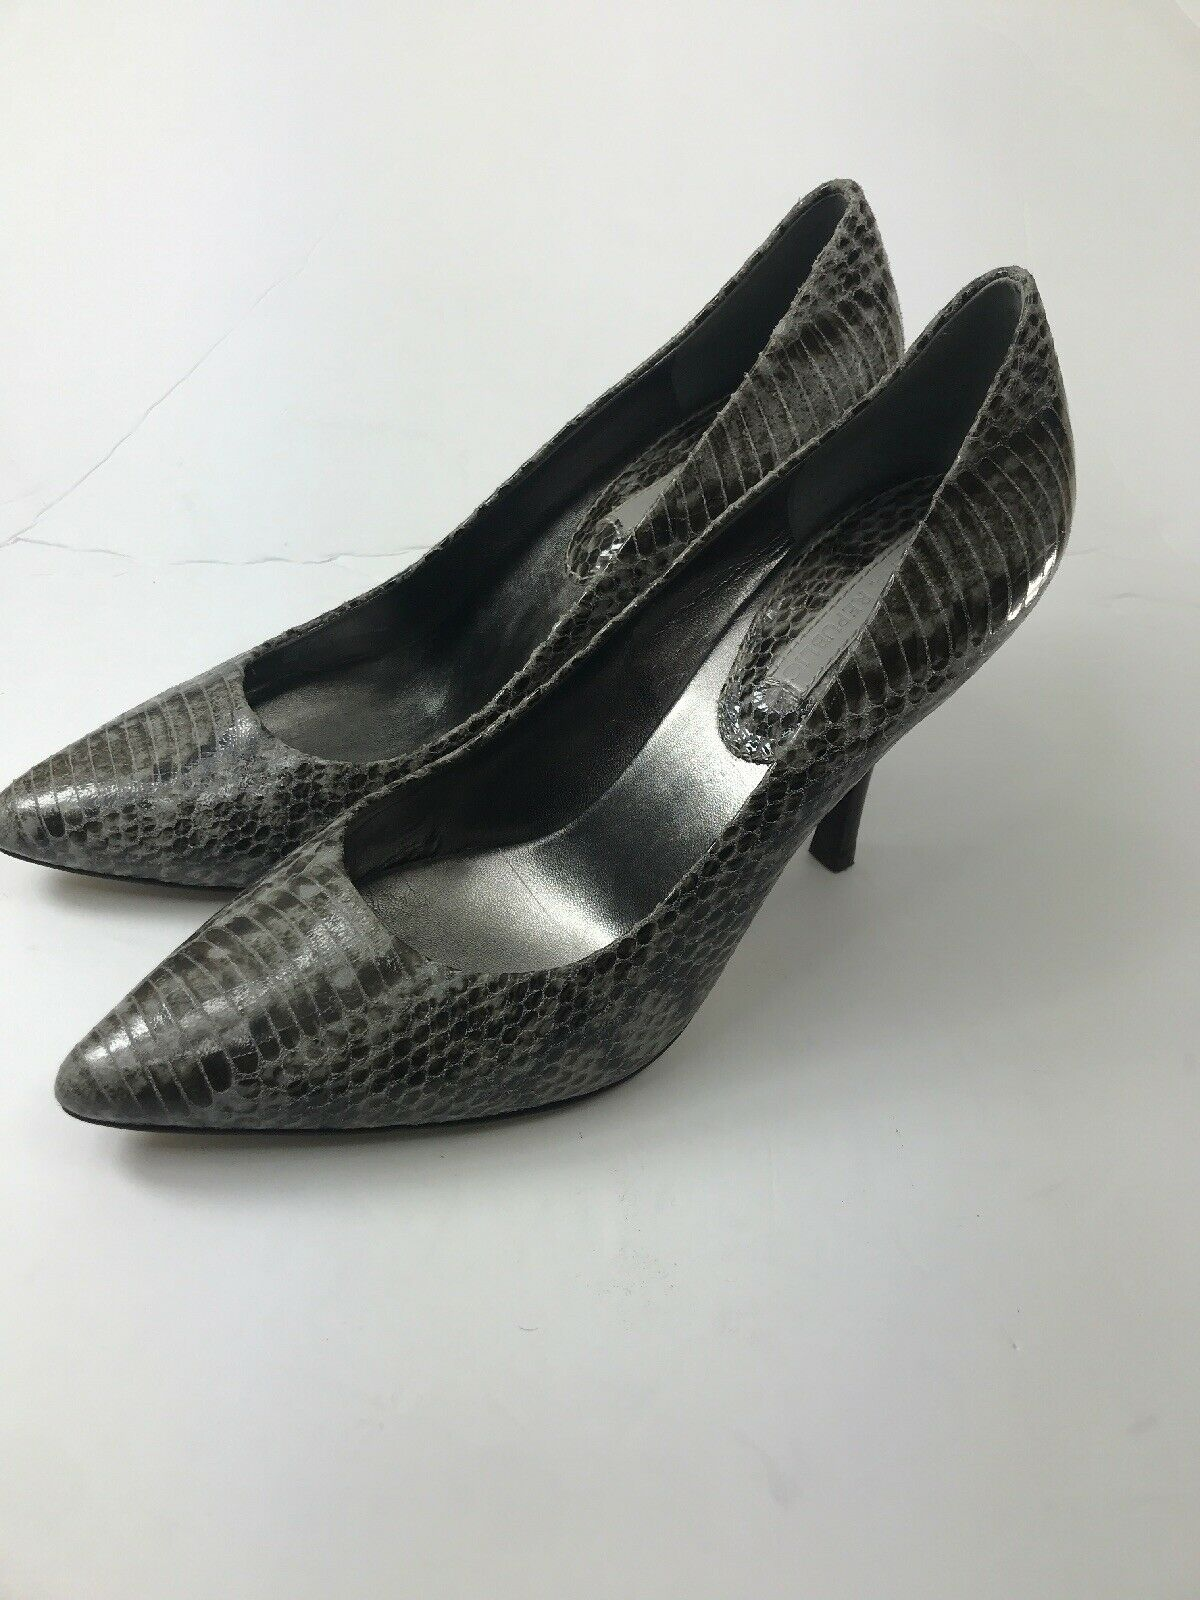 Banana Republic Women's Size 10M SnakeSkin Leather Classic Pumps Heels